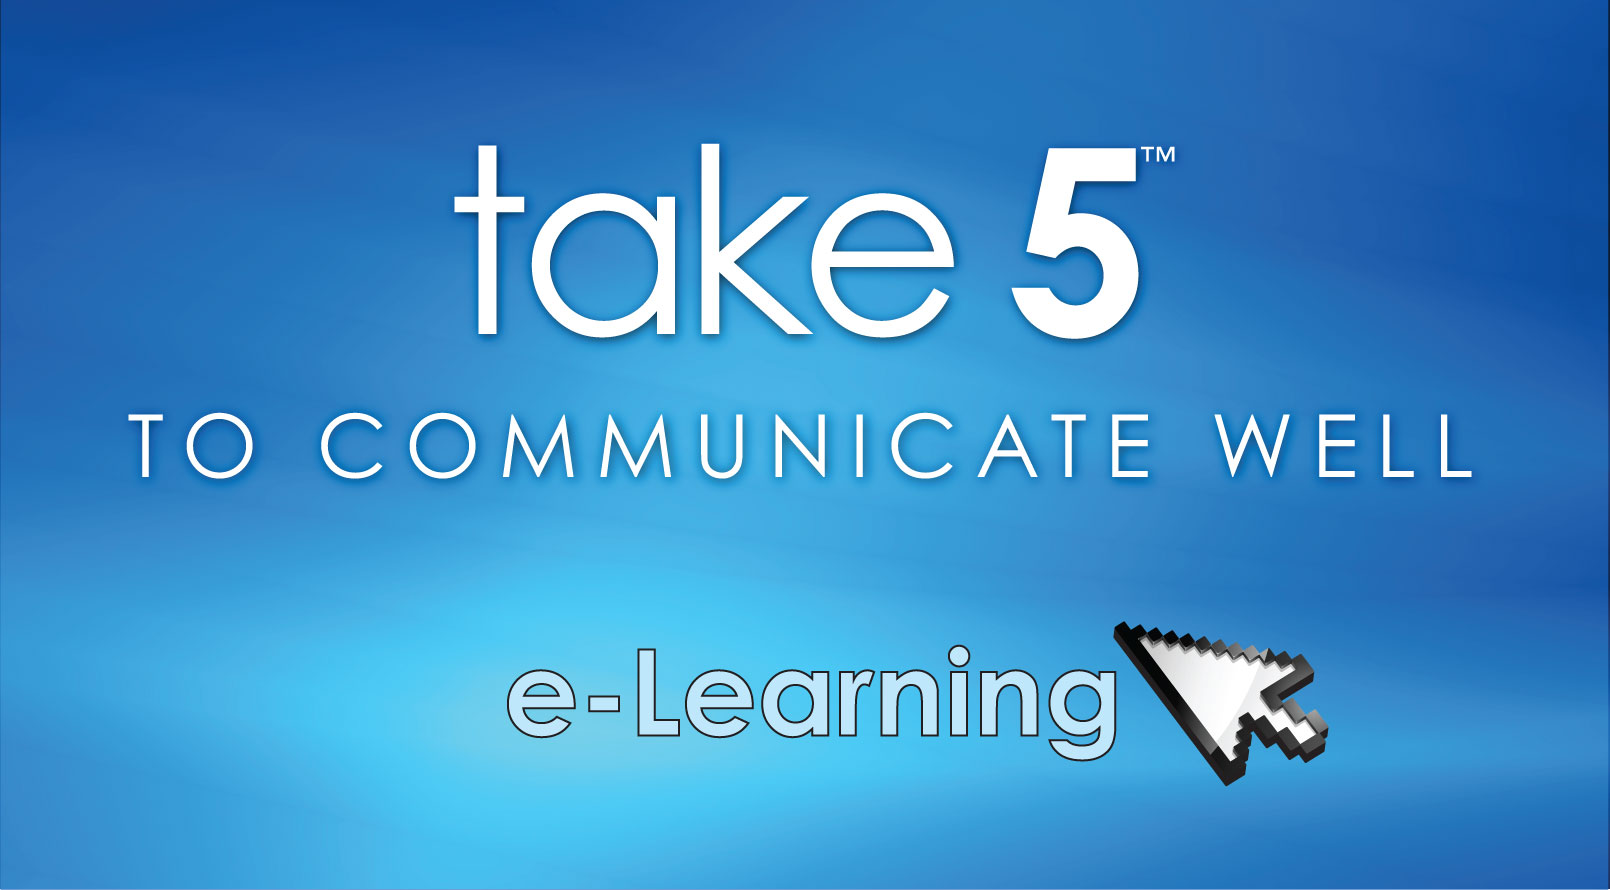 take 5 to communicate well e-learning, communication e-learning, tips to communicate well